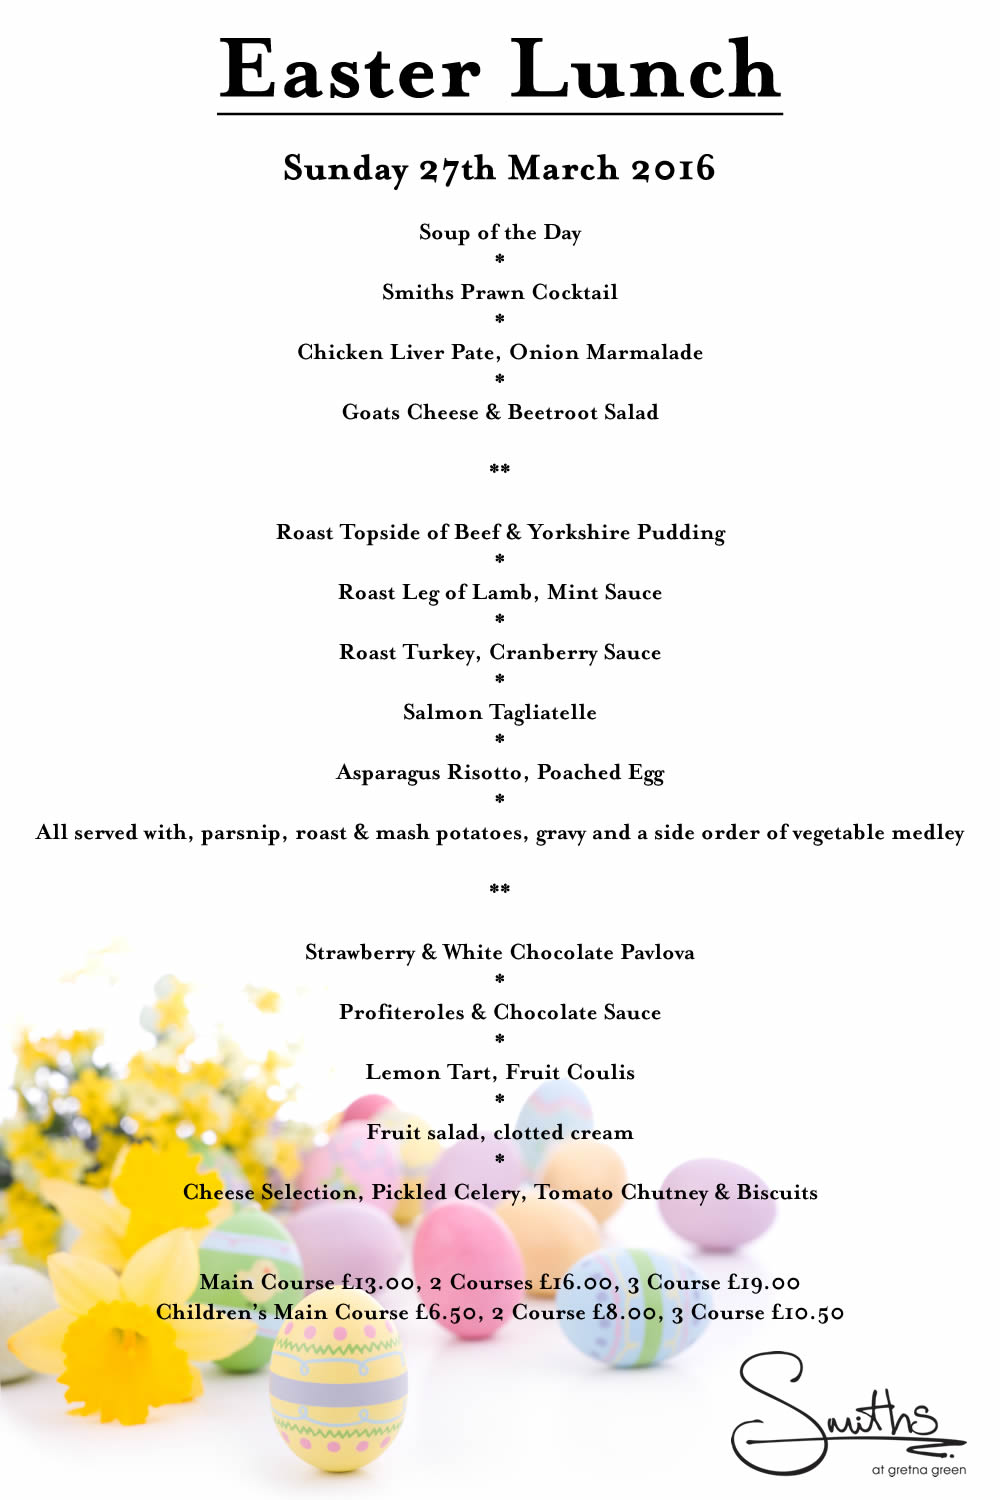 Easter Dinner Ideas Come For Easter Sunday Brunch At Smiths